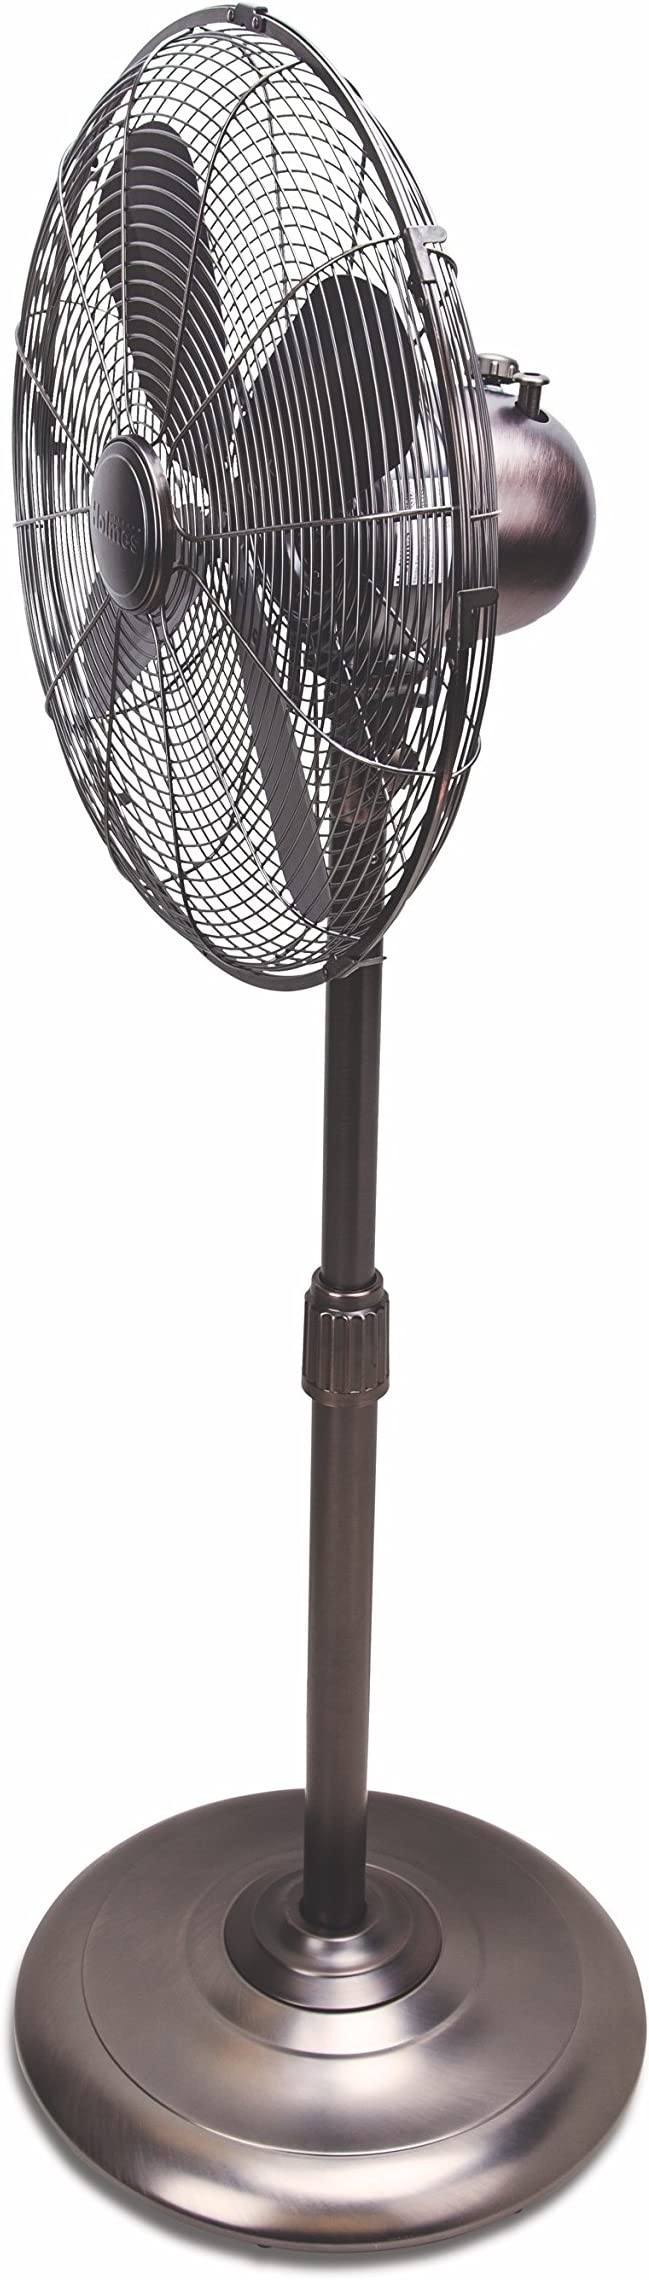 Amazon Com Holmes Hsf1606 Btu Stand Fan 16 Inch Brushed Antique Nickle Finish Home Kitchen